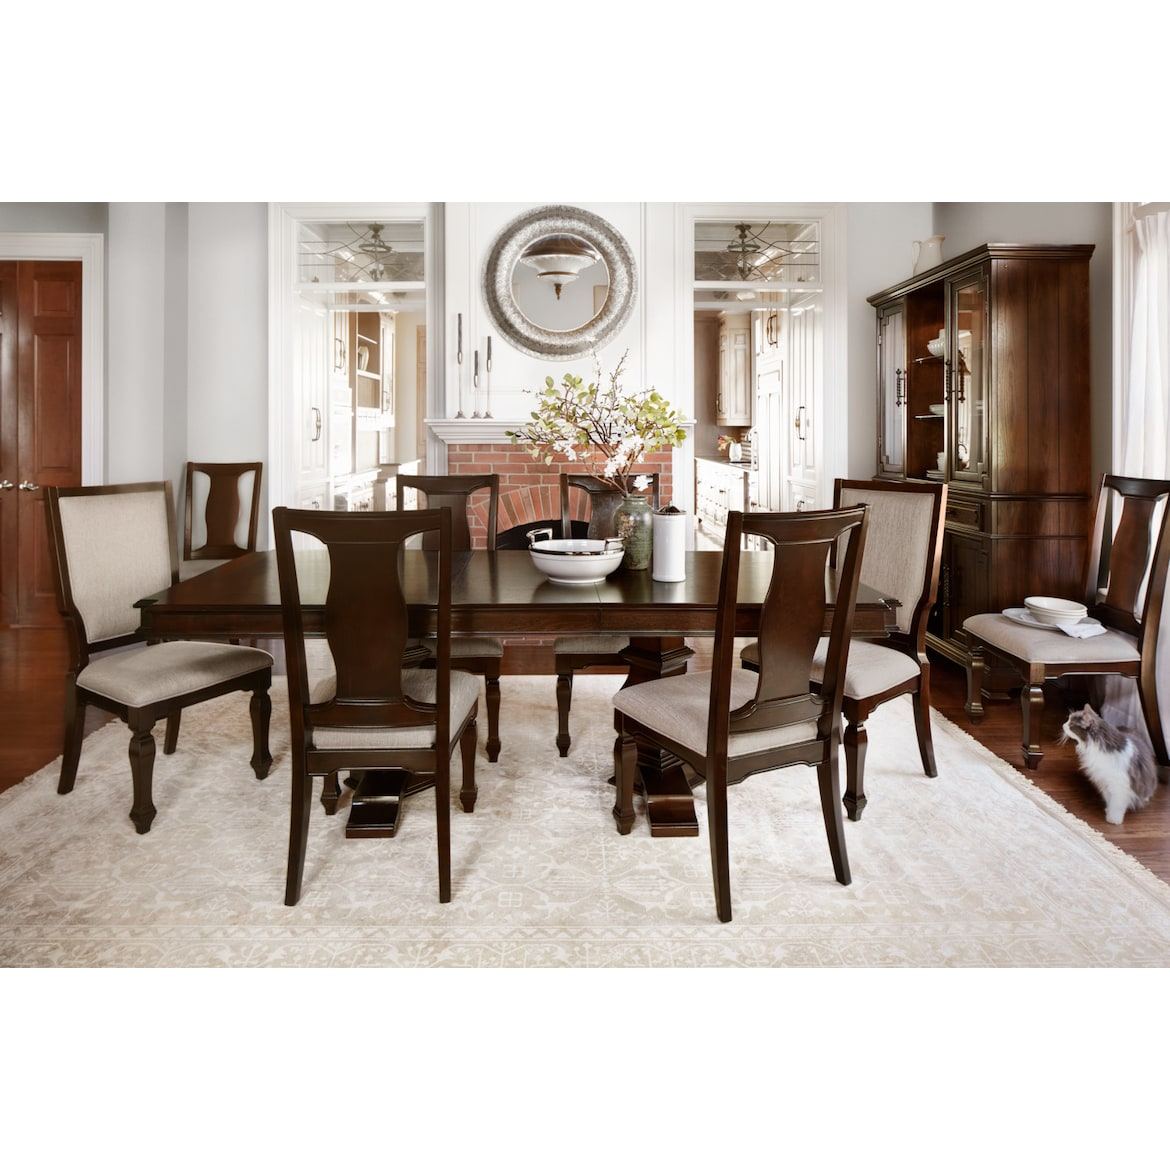 Dining Room Table For 2: Vienna Dining Table, 6 Side Chairs And 2 Upholstered Side